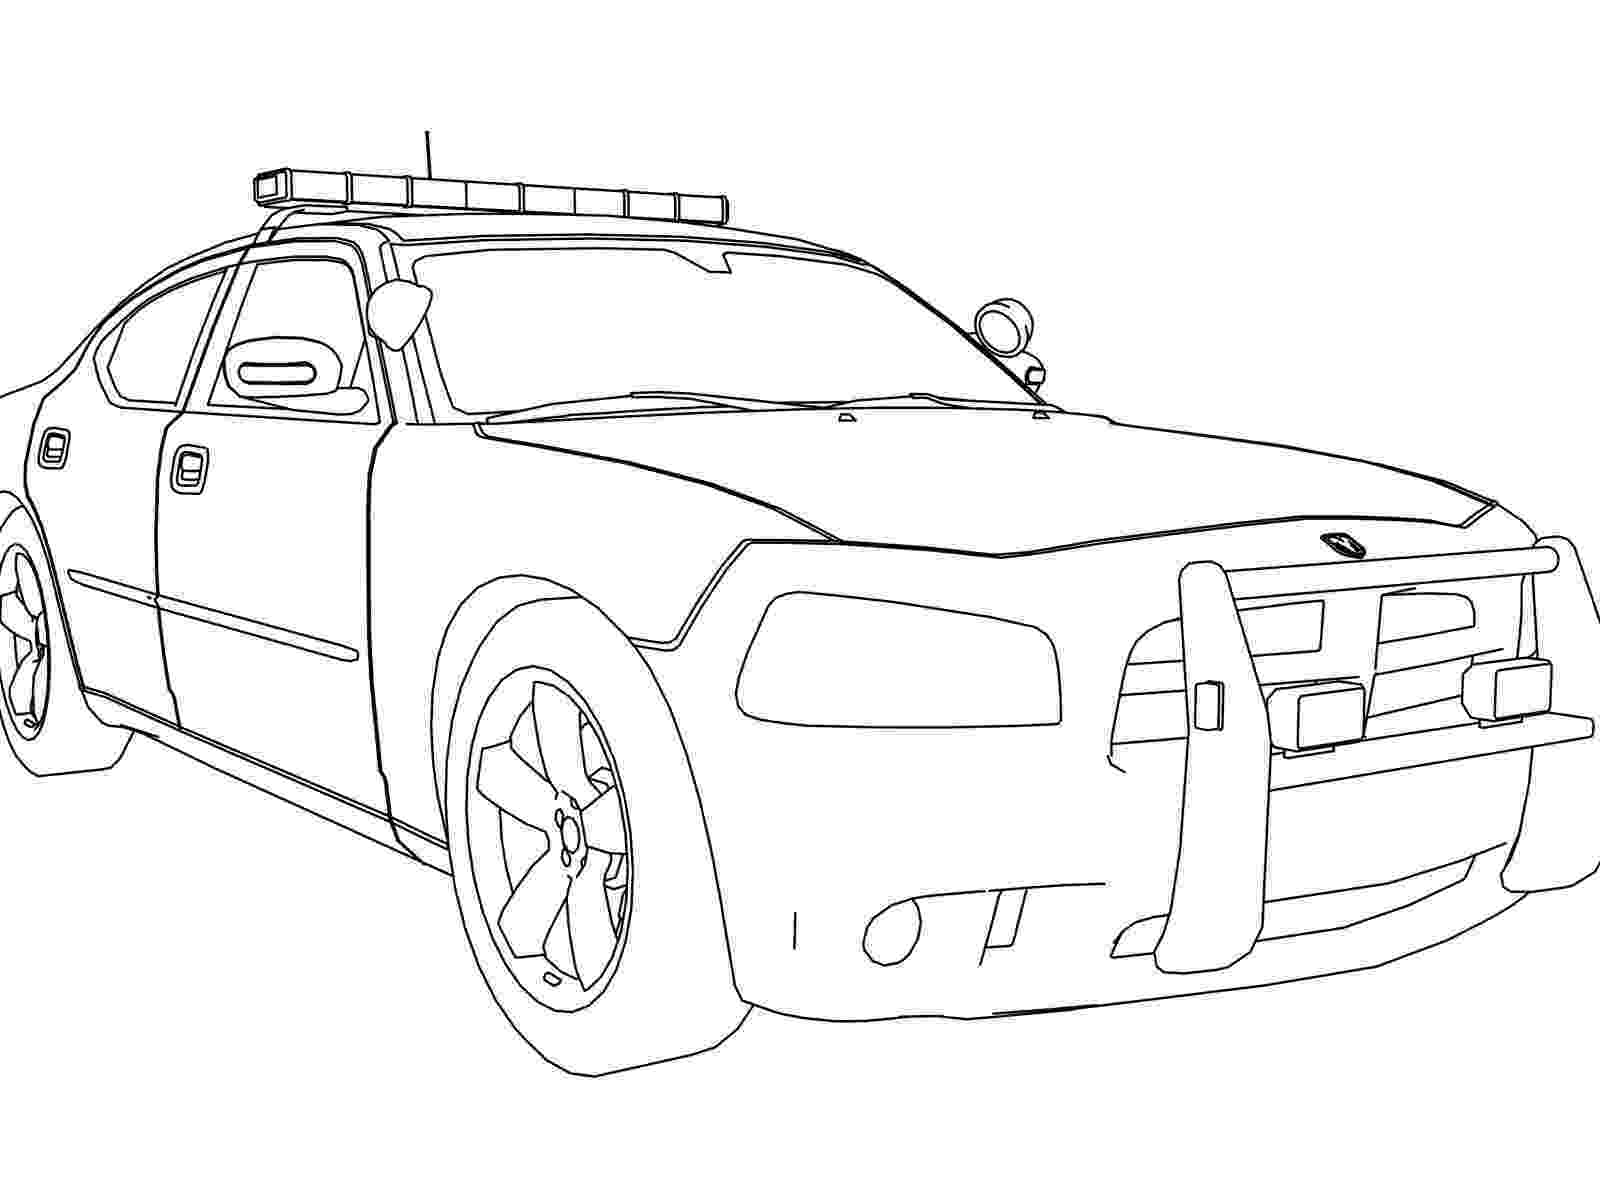 cop car coloring pages police car coloring pages getcoloringpagescom cop car pages coloring